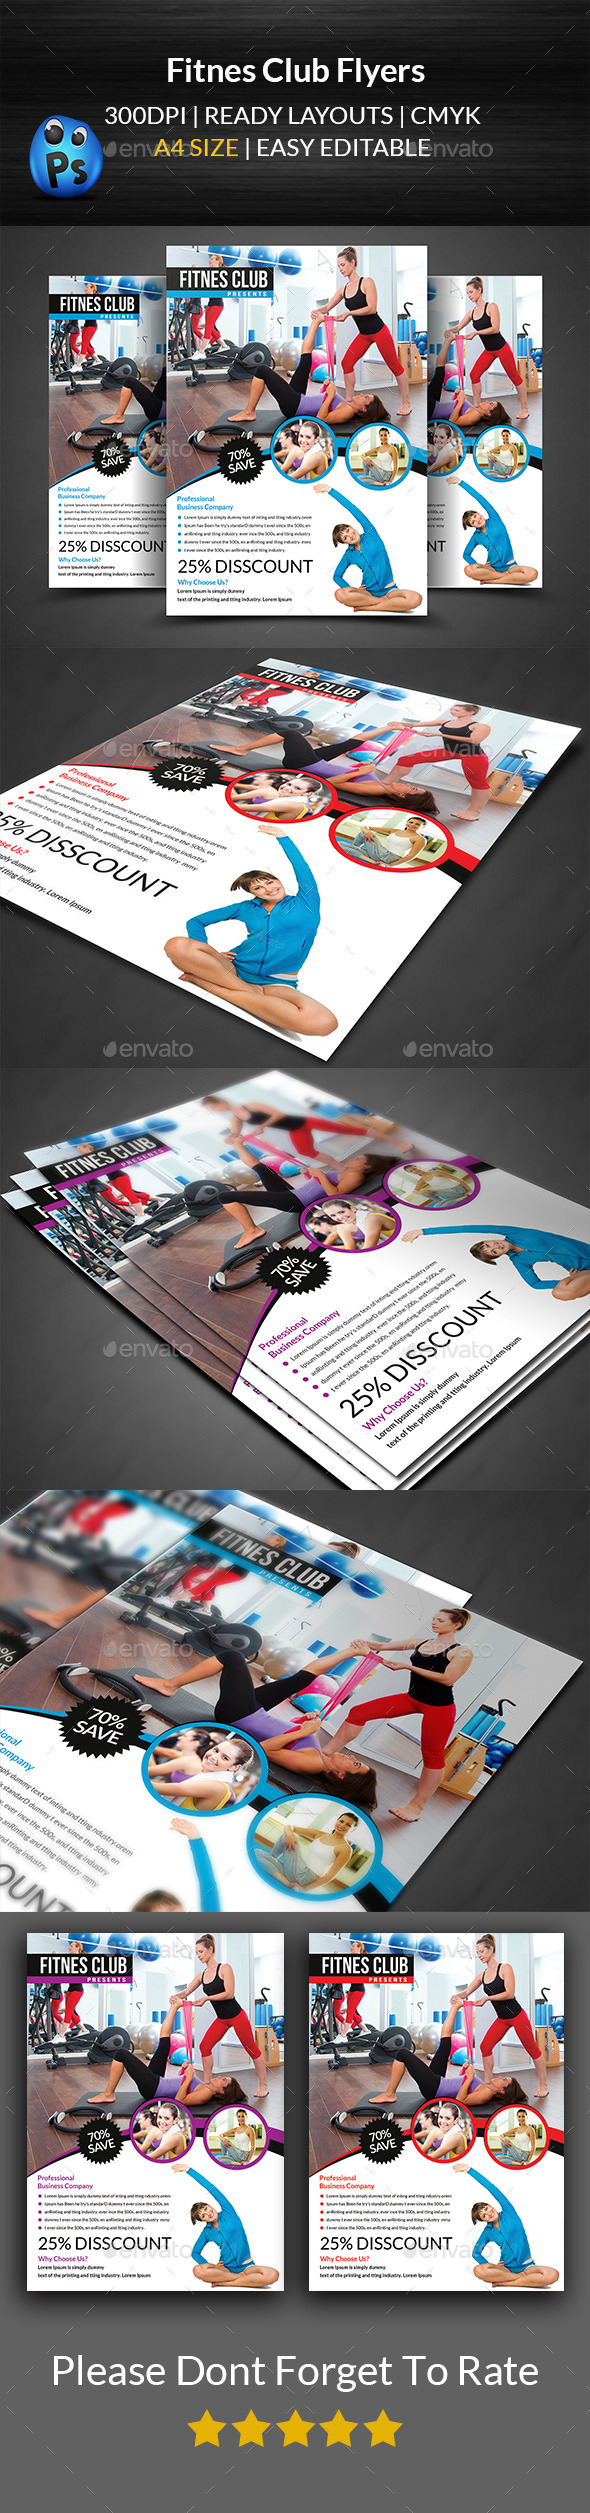 Fitness Flyer Templates - Corporate Flyers